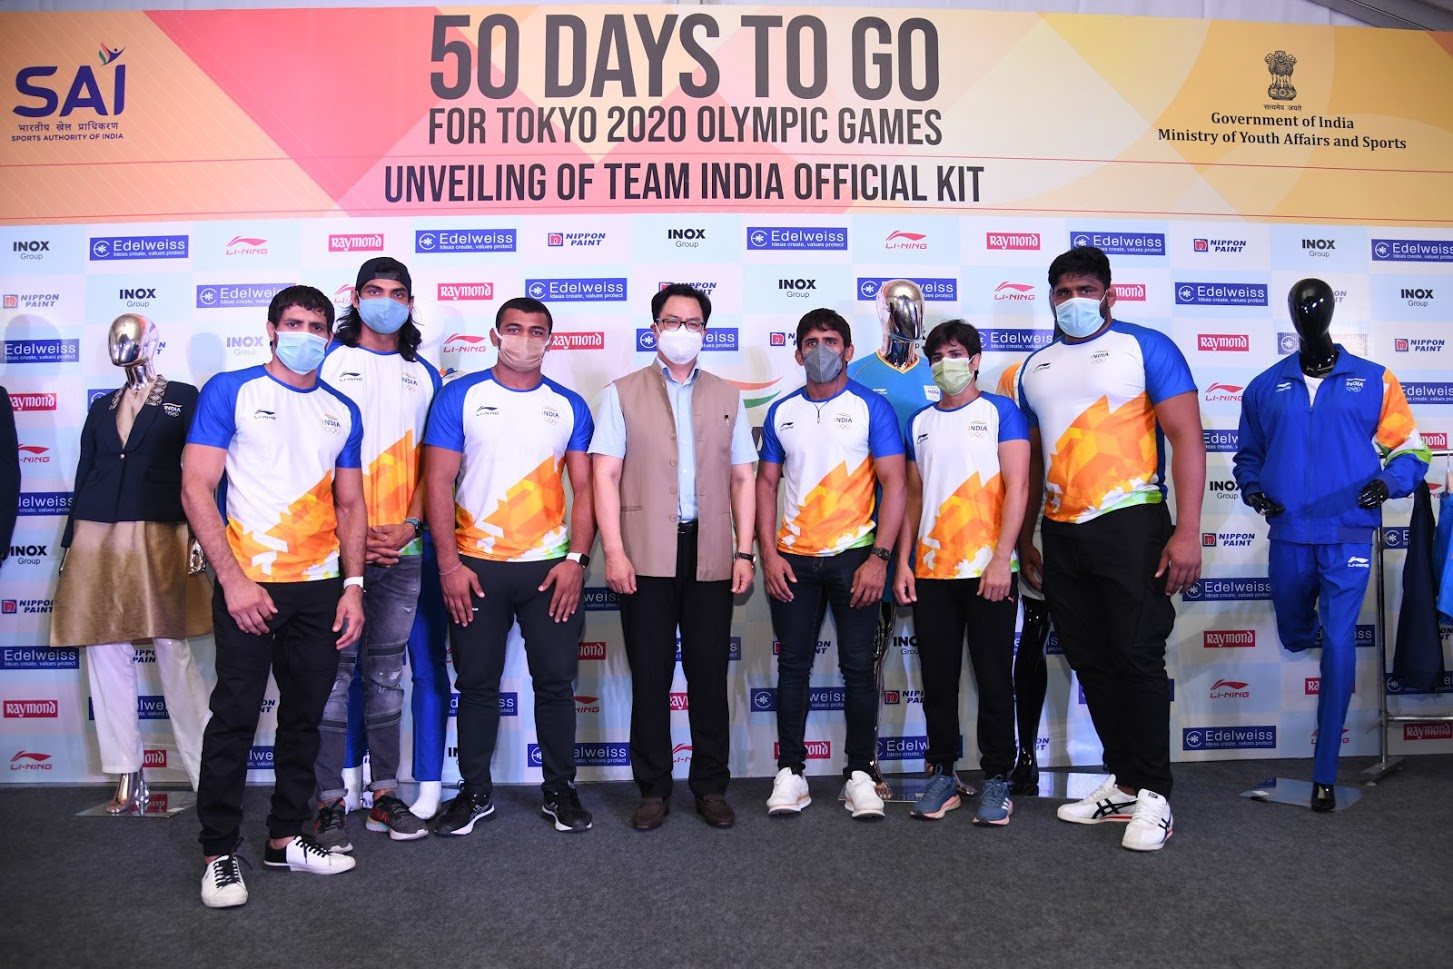 Indian kit for Tokyo 2020 unveiled